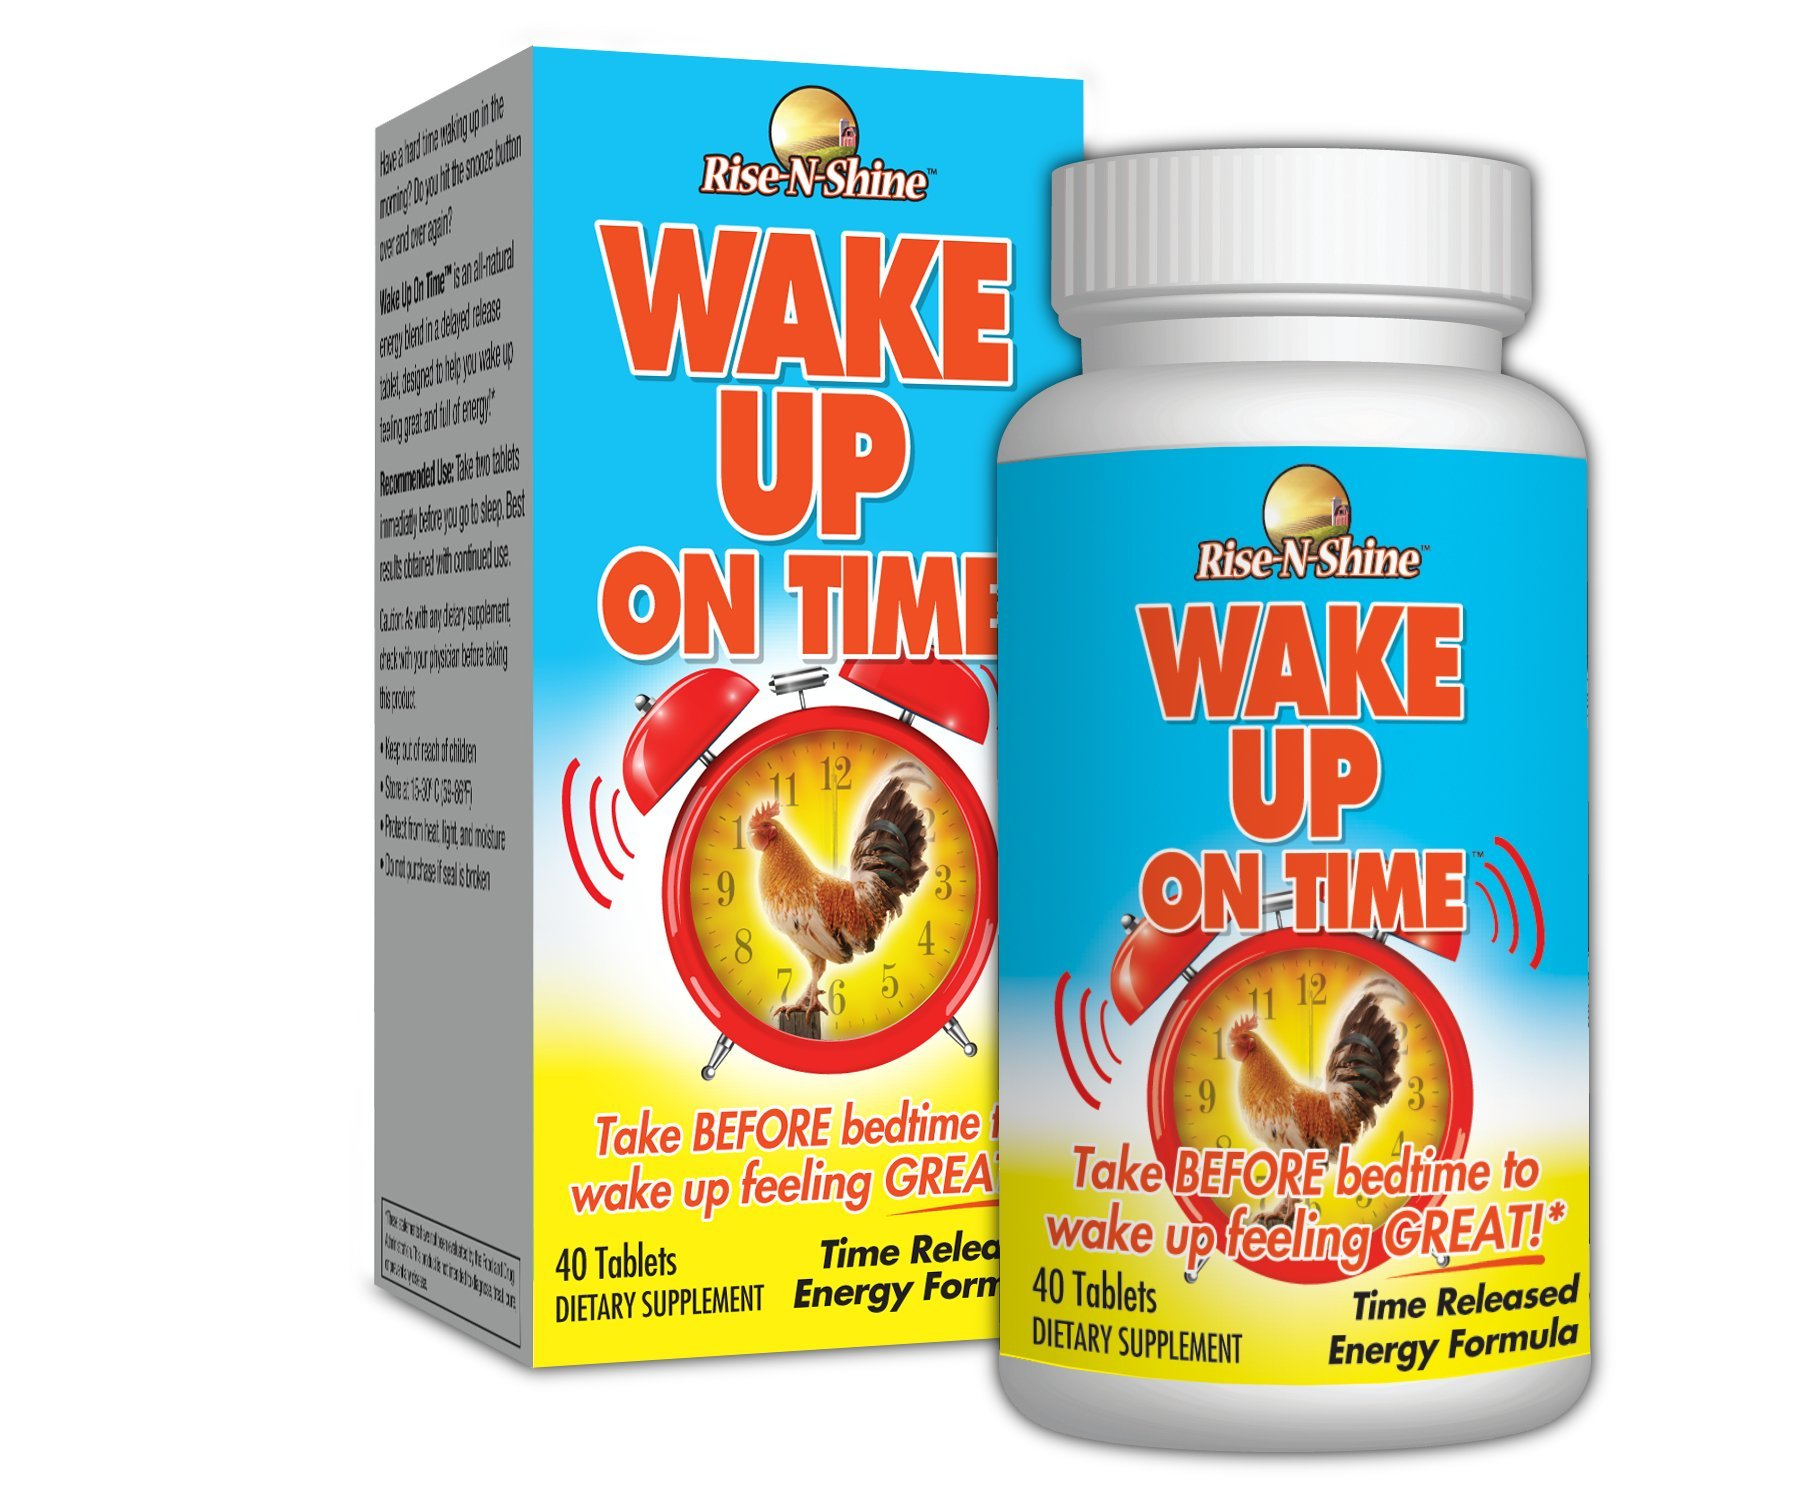 Amazon.com: Rise-N-Shine Wake Up On Time - Time Release Energy ...